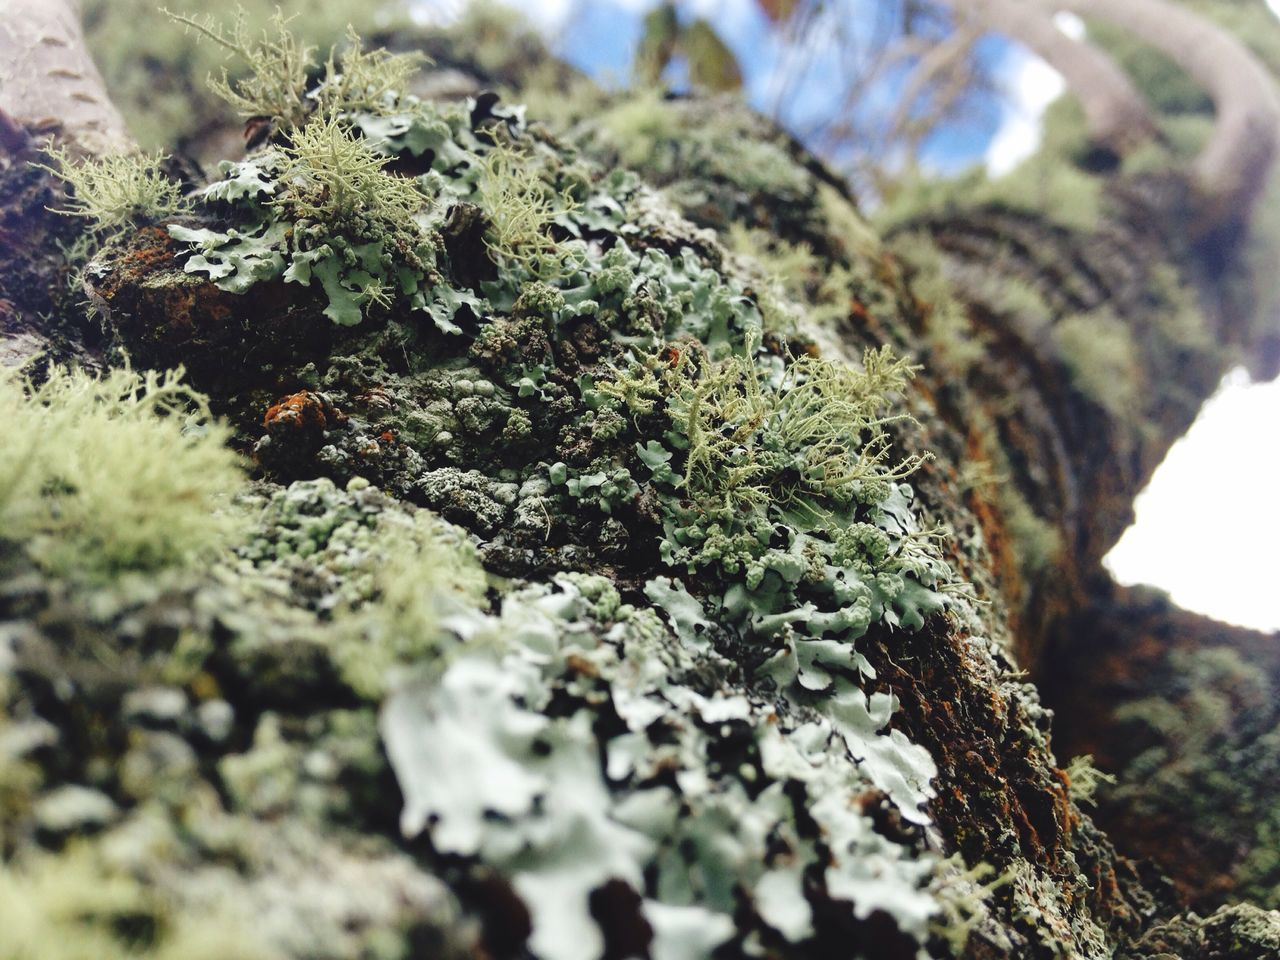 selective focus, lichen, close-up, moss, nature, marijuana - herbal cannabis, no people, growth, day, outdoors, plant, fungus